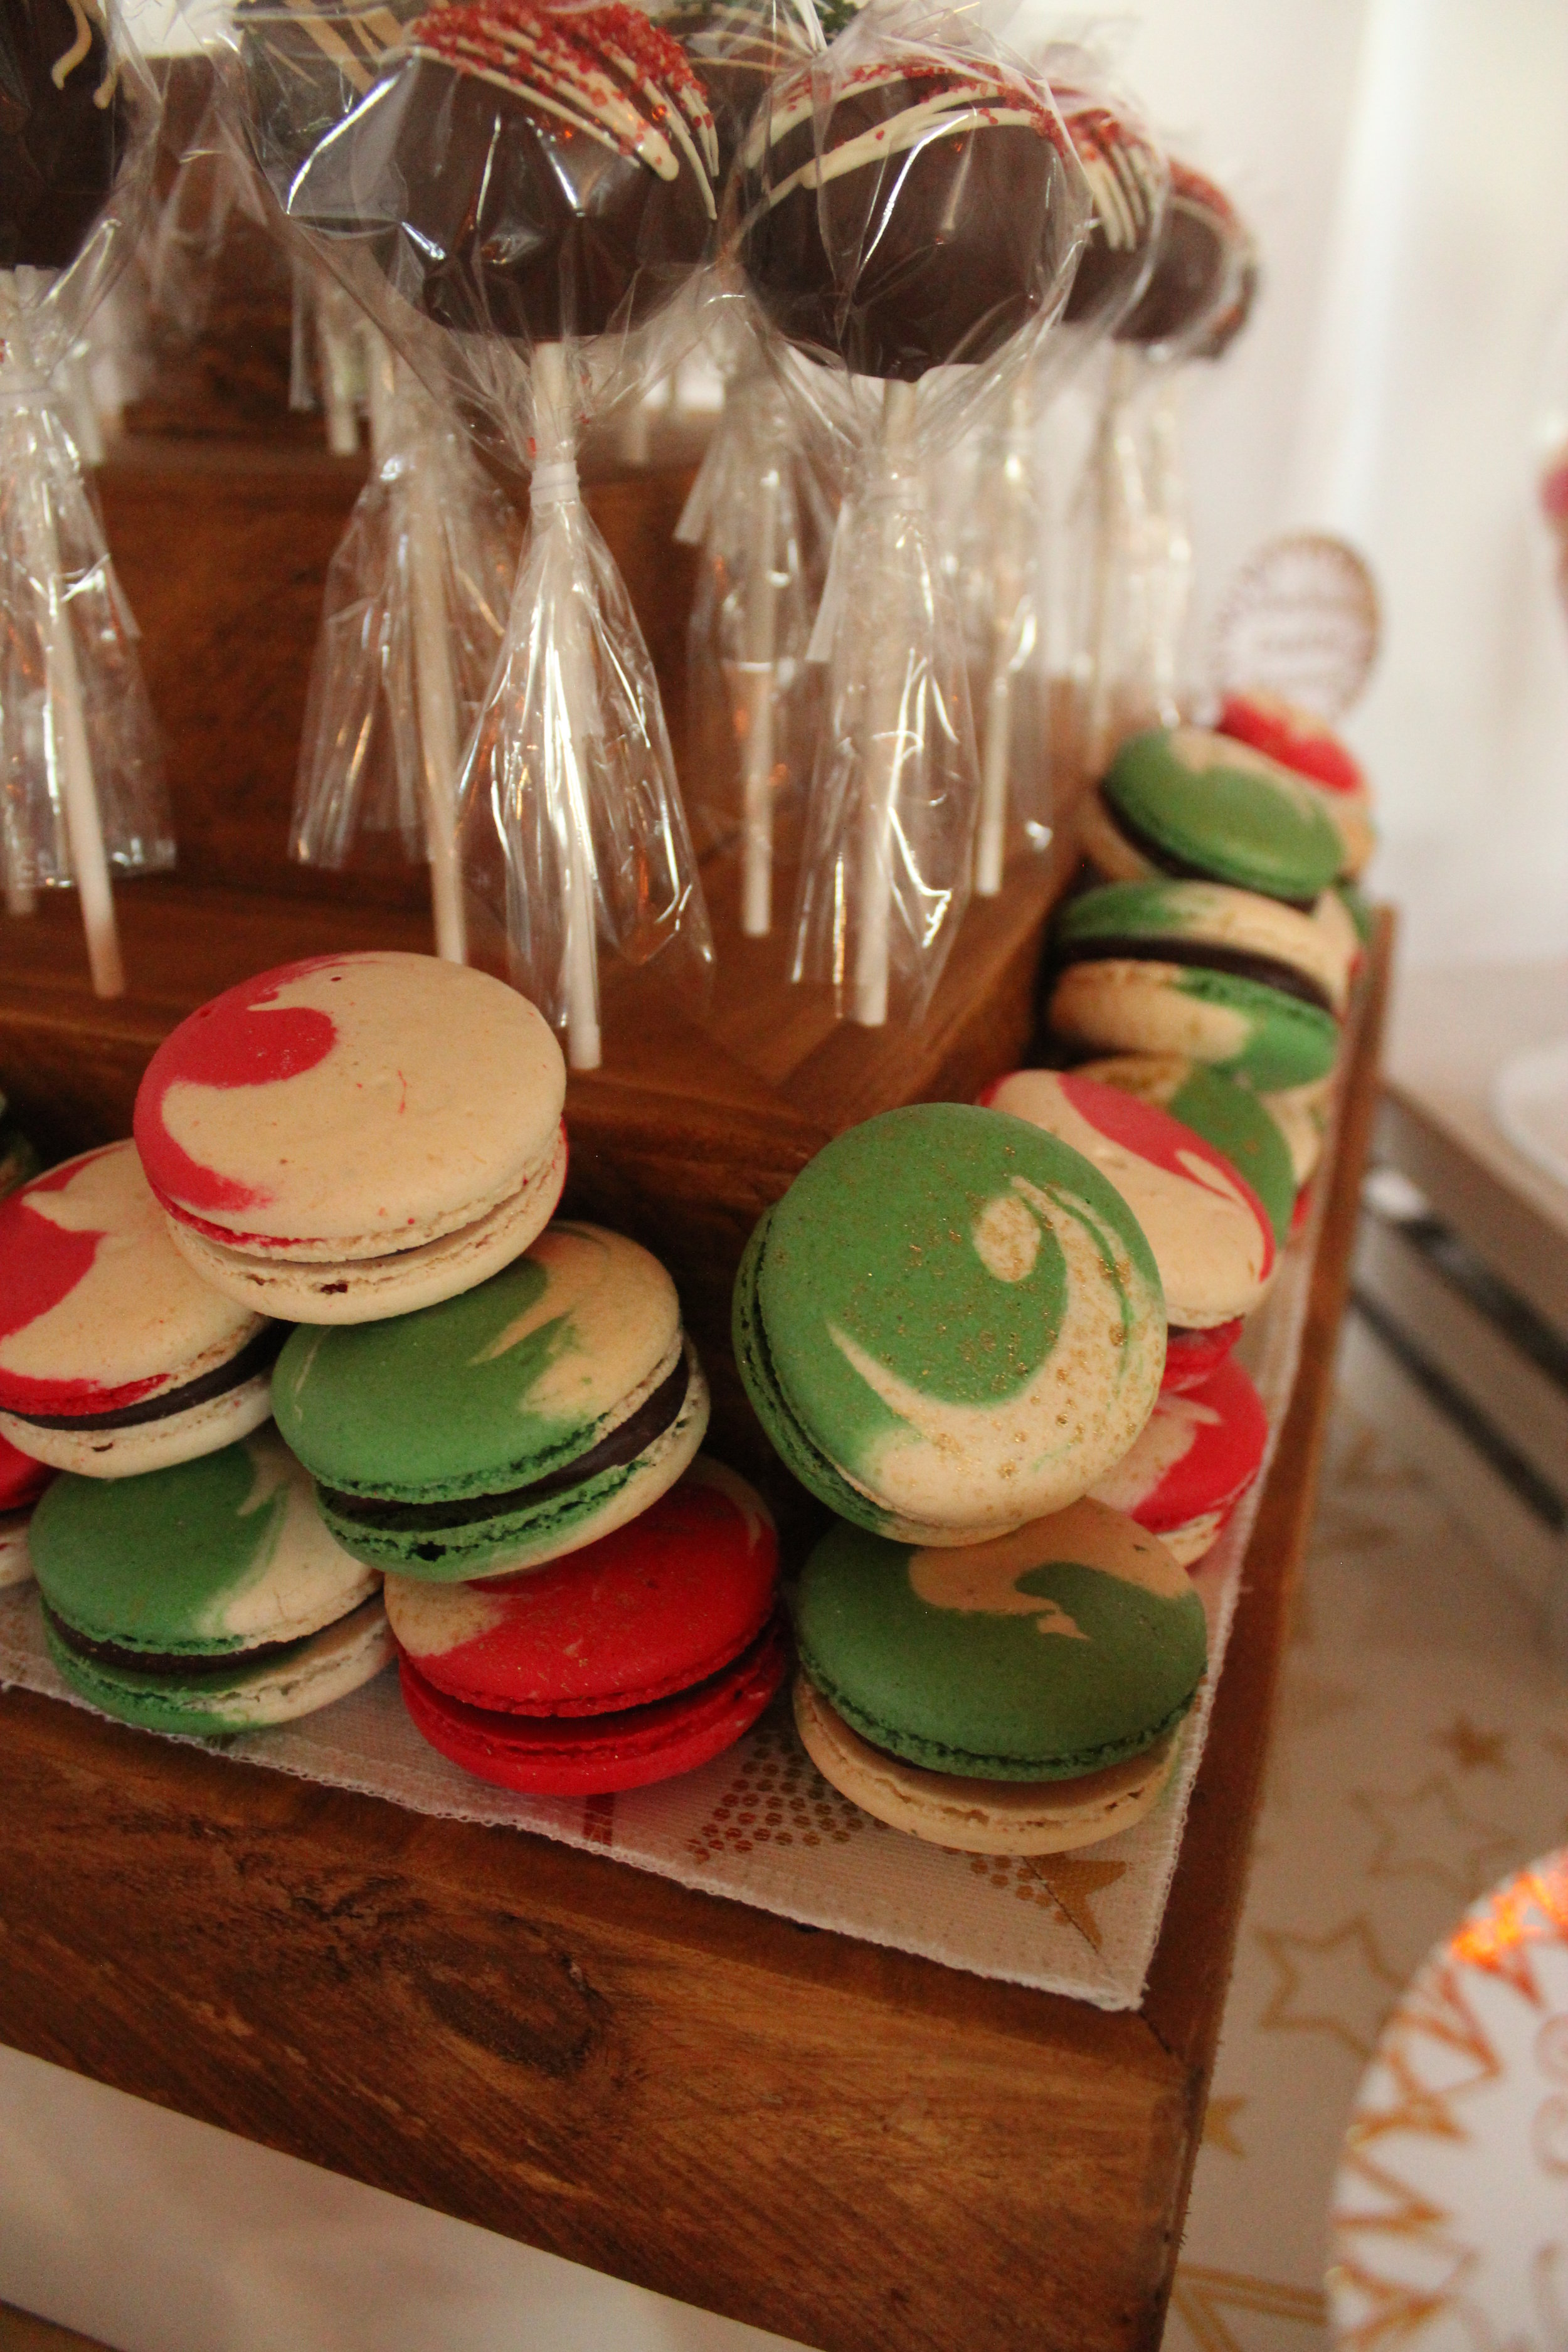 Christmas Candy Bar - Red, Green, White, Gold 7/11 - Marche du Macaron Gingerbread Macarons